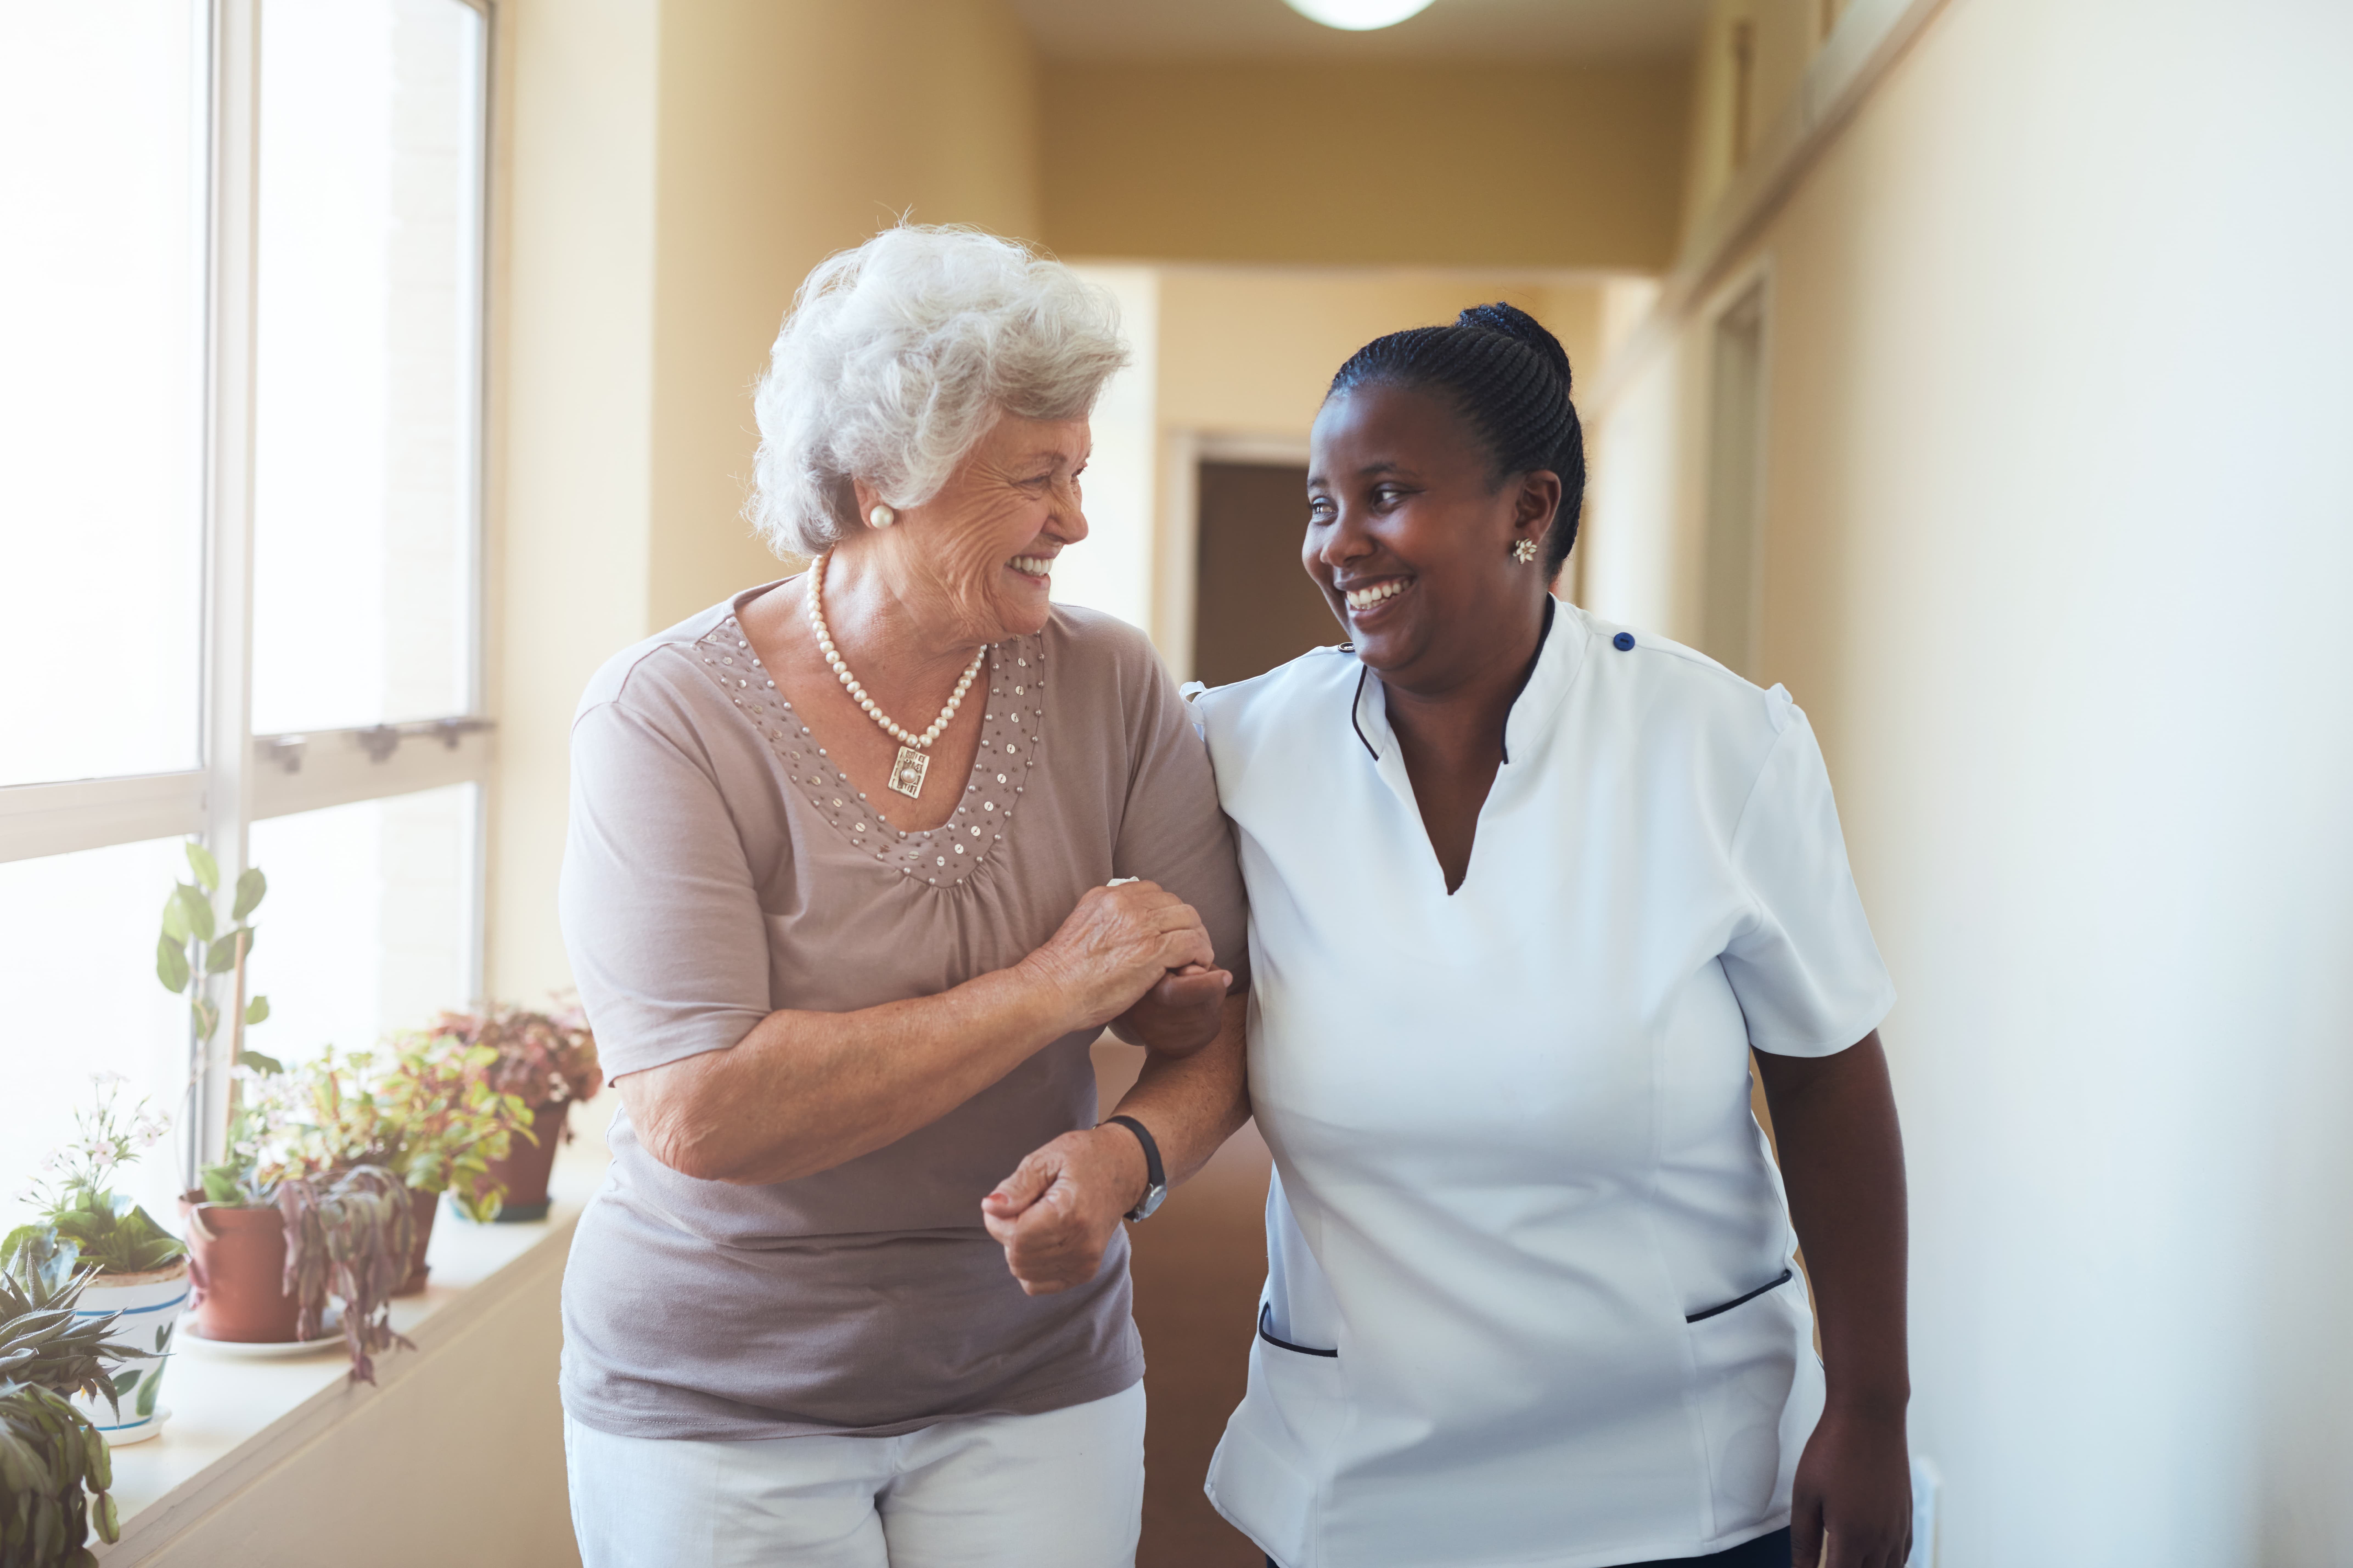 Care for seniors and patients with patient care technician certification | CareerStep